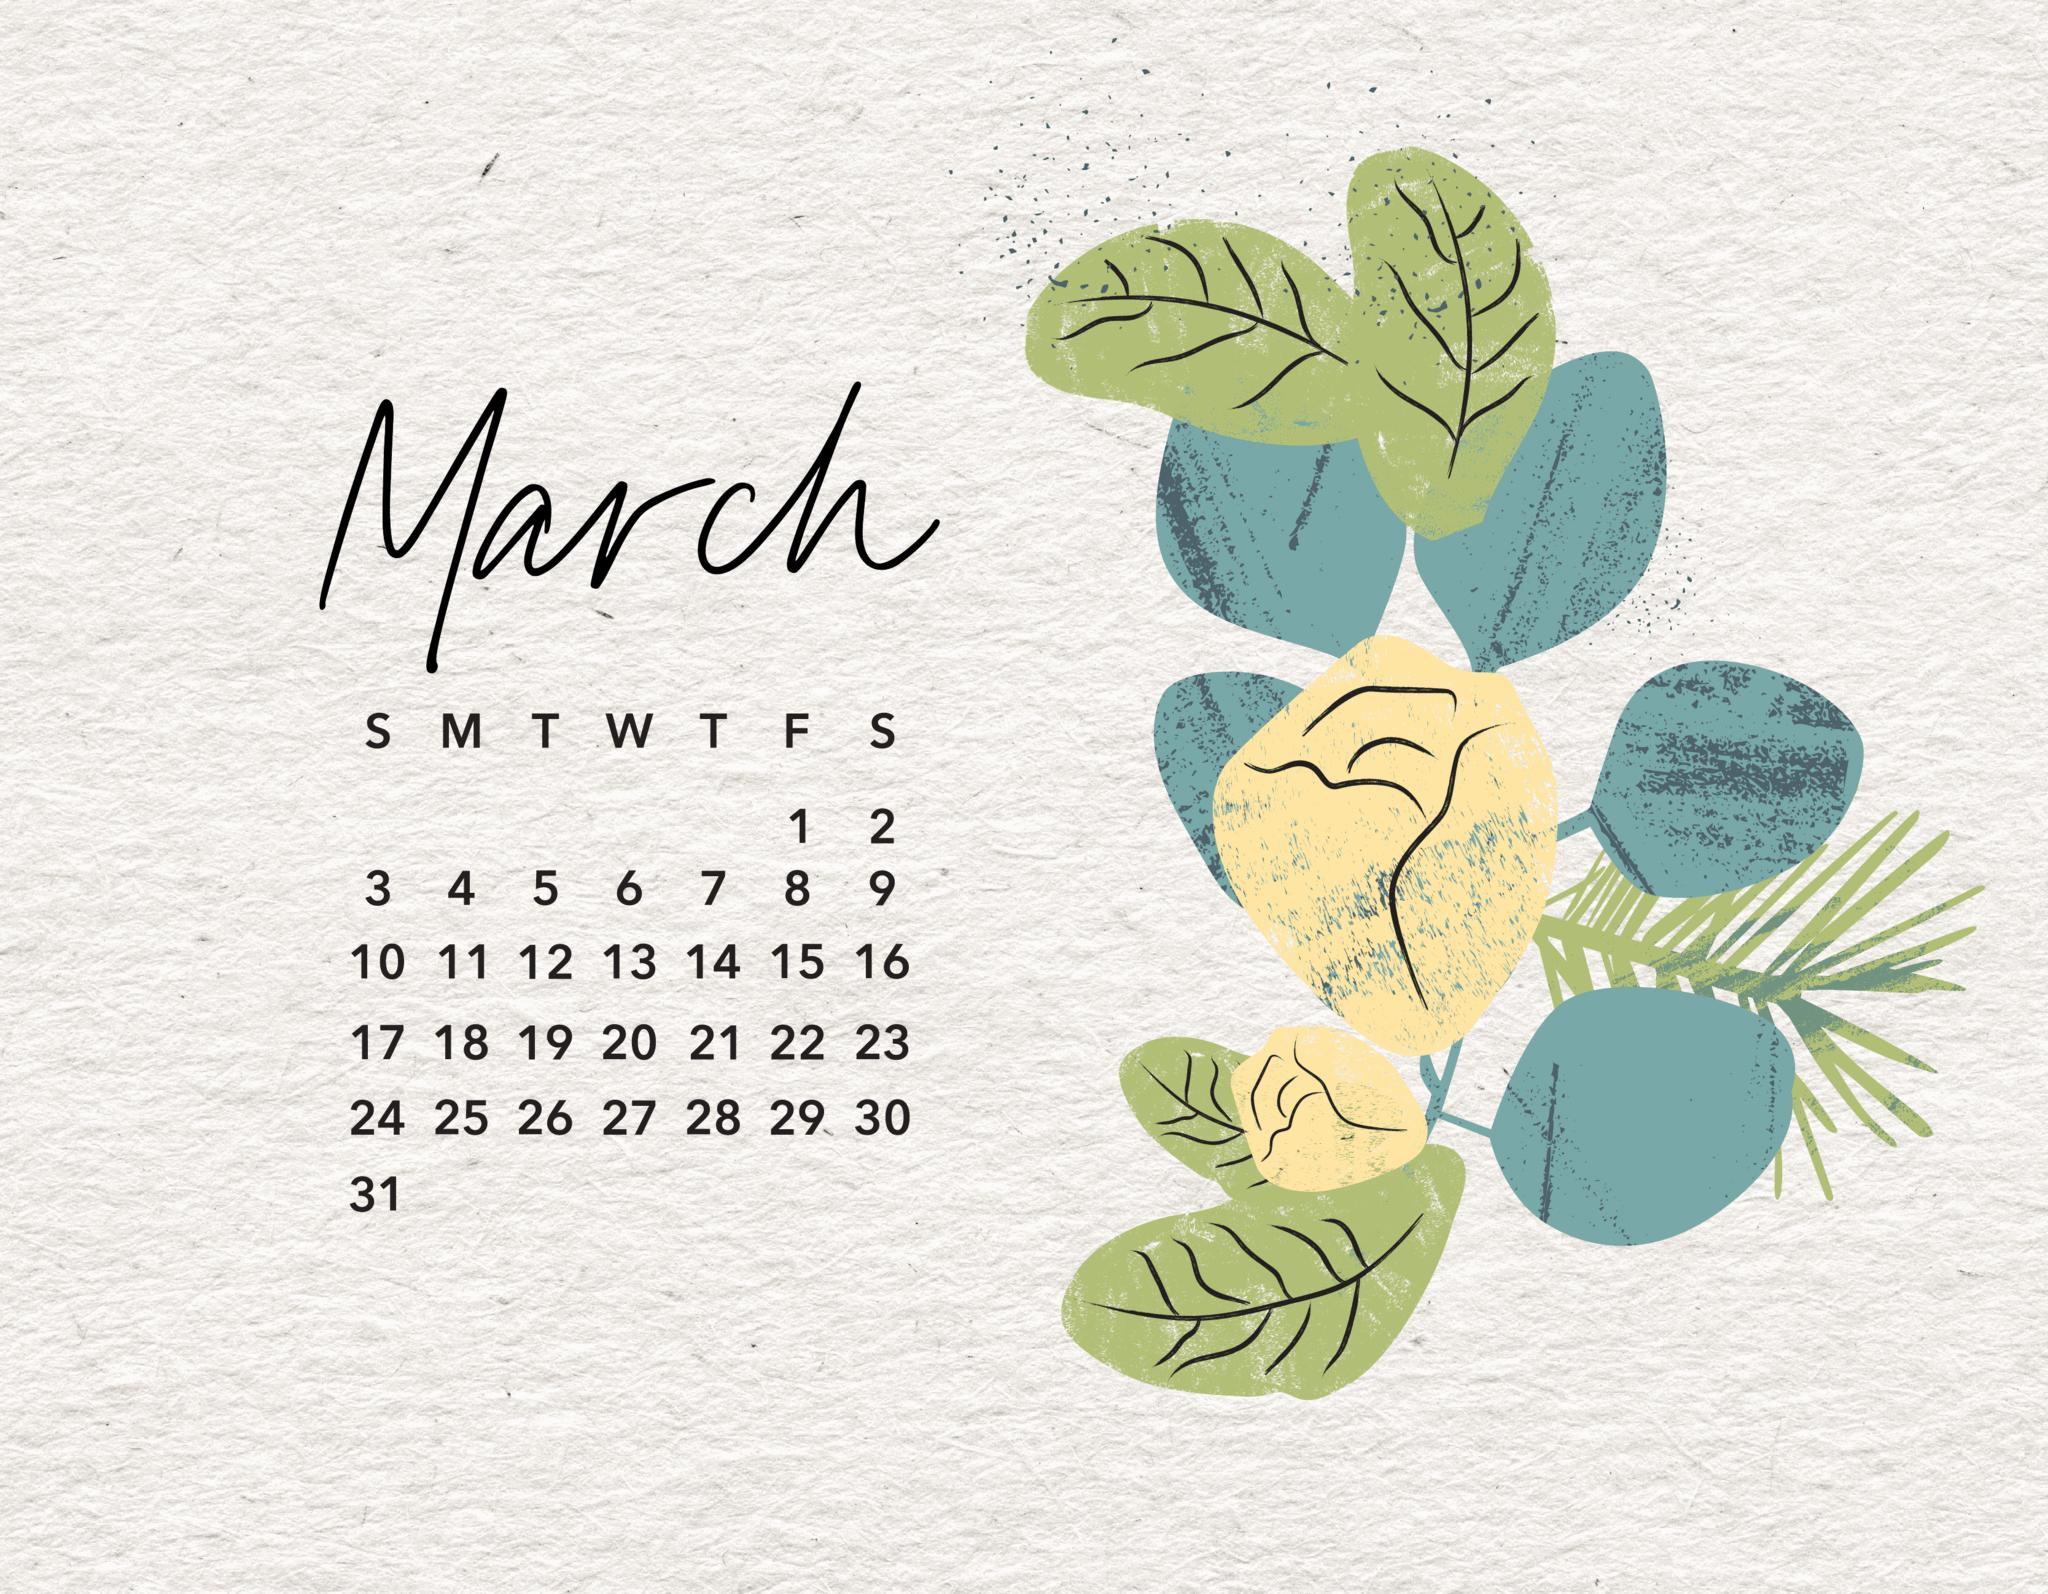 March 2019 Calendar Wallpaper 2048x1594